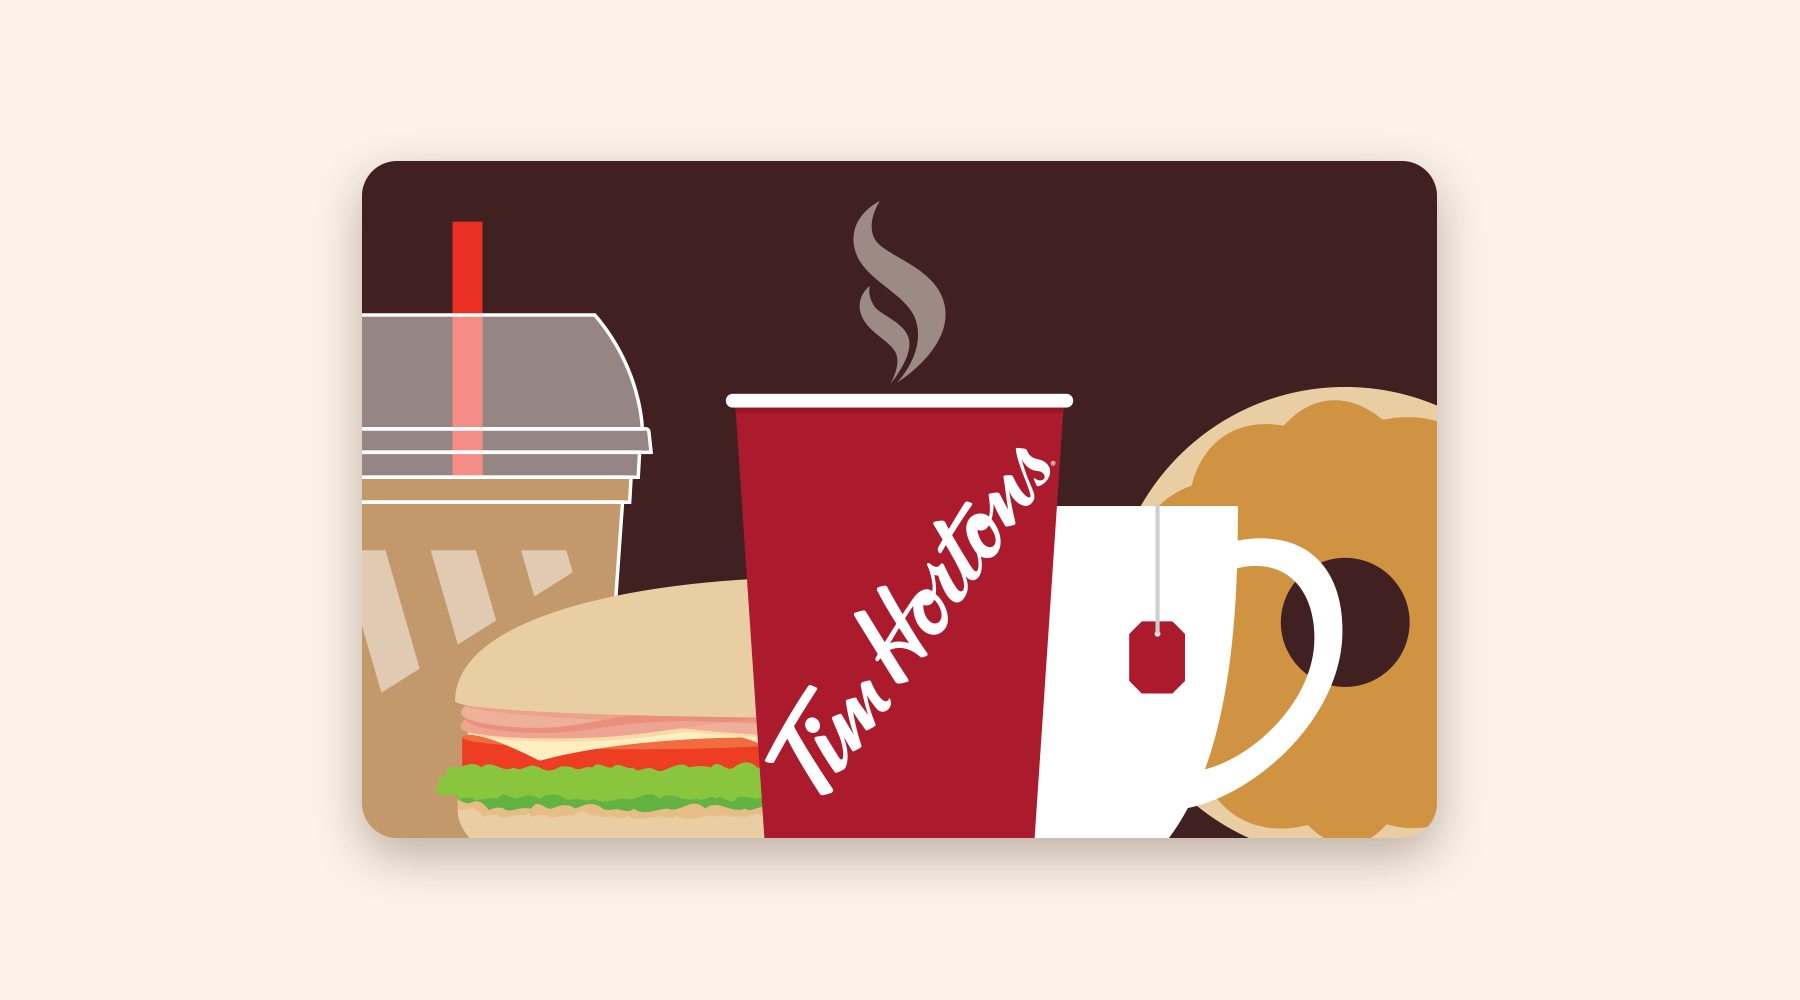 Gift card illustrated with various food and beverage items from Tim Hortons